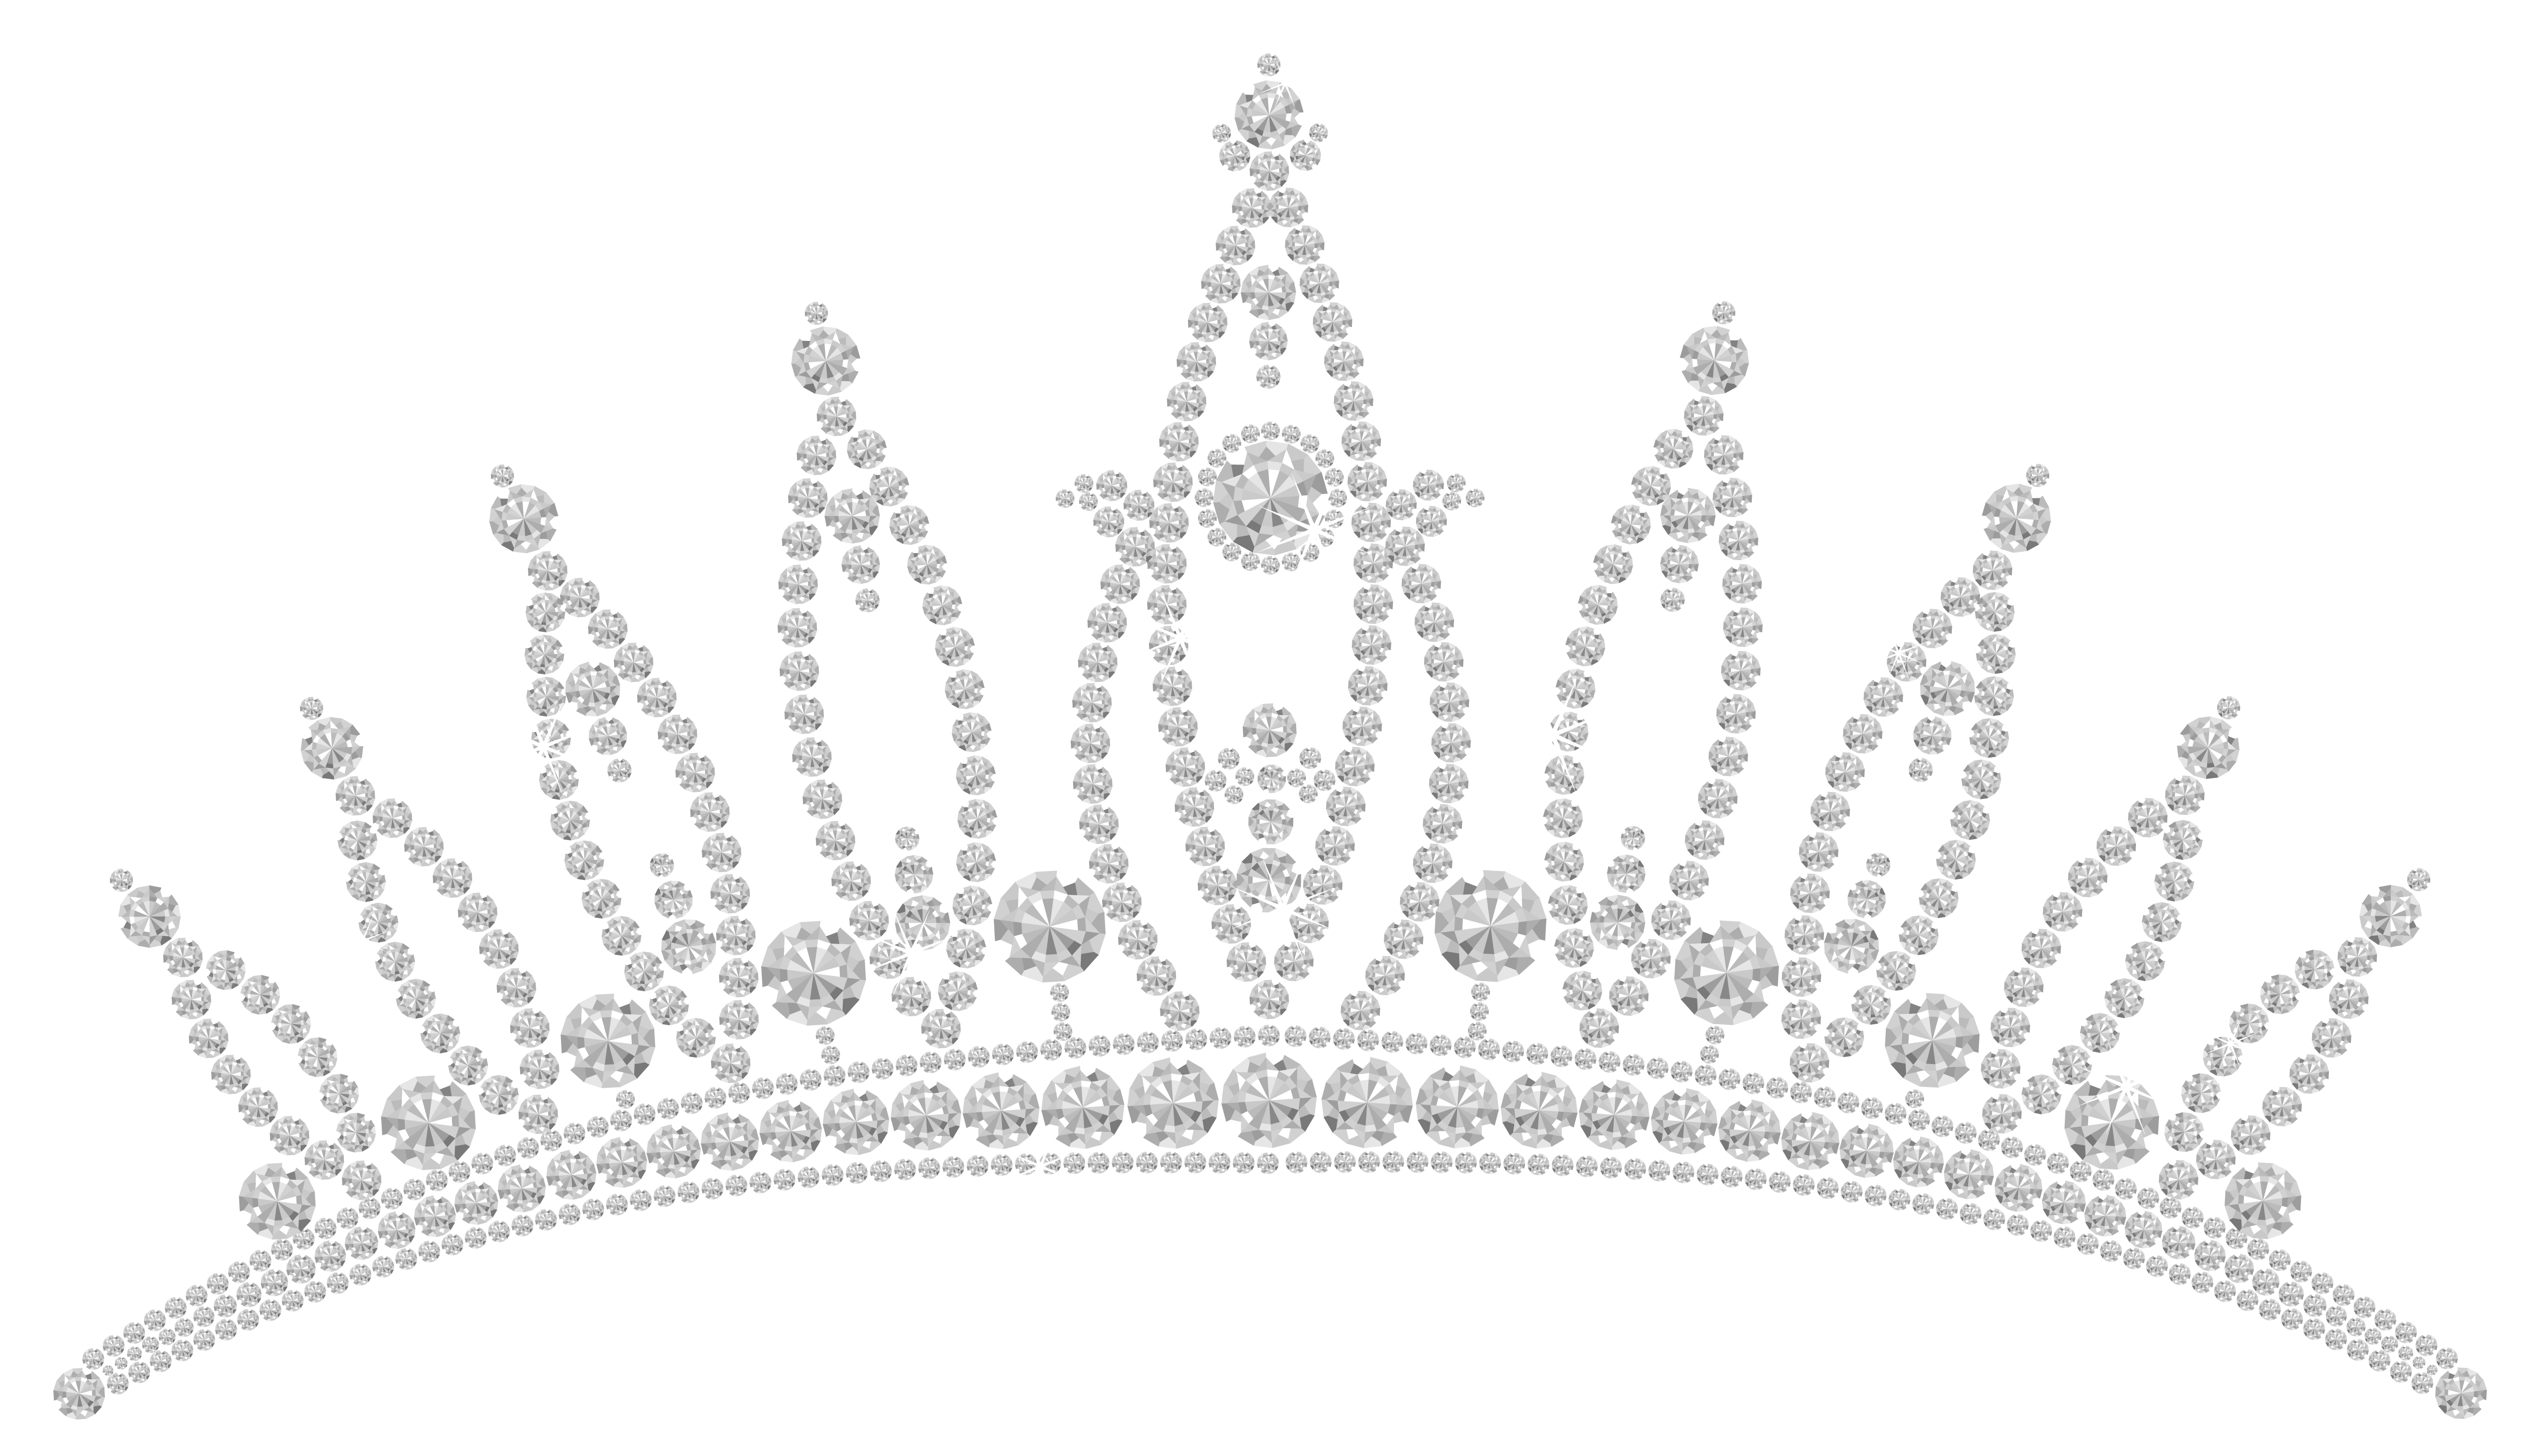 image transparent Tiara clipart transparent background. Diamond png picture gallery